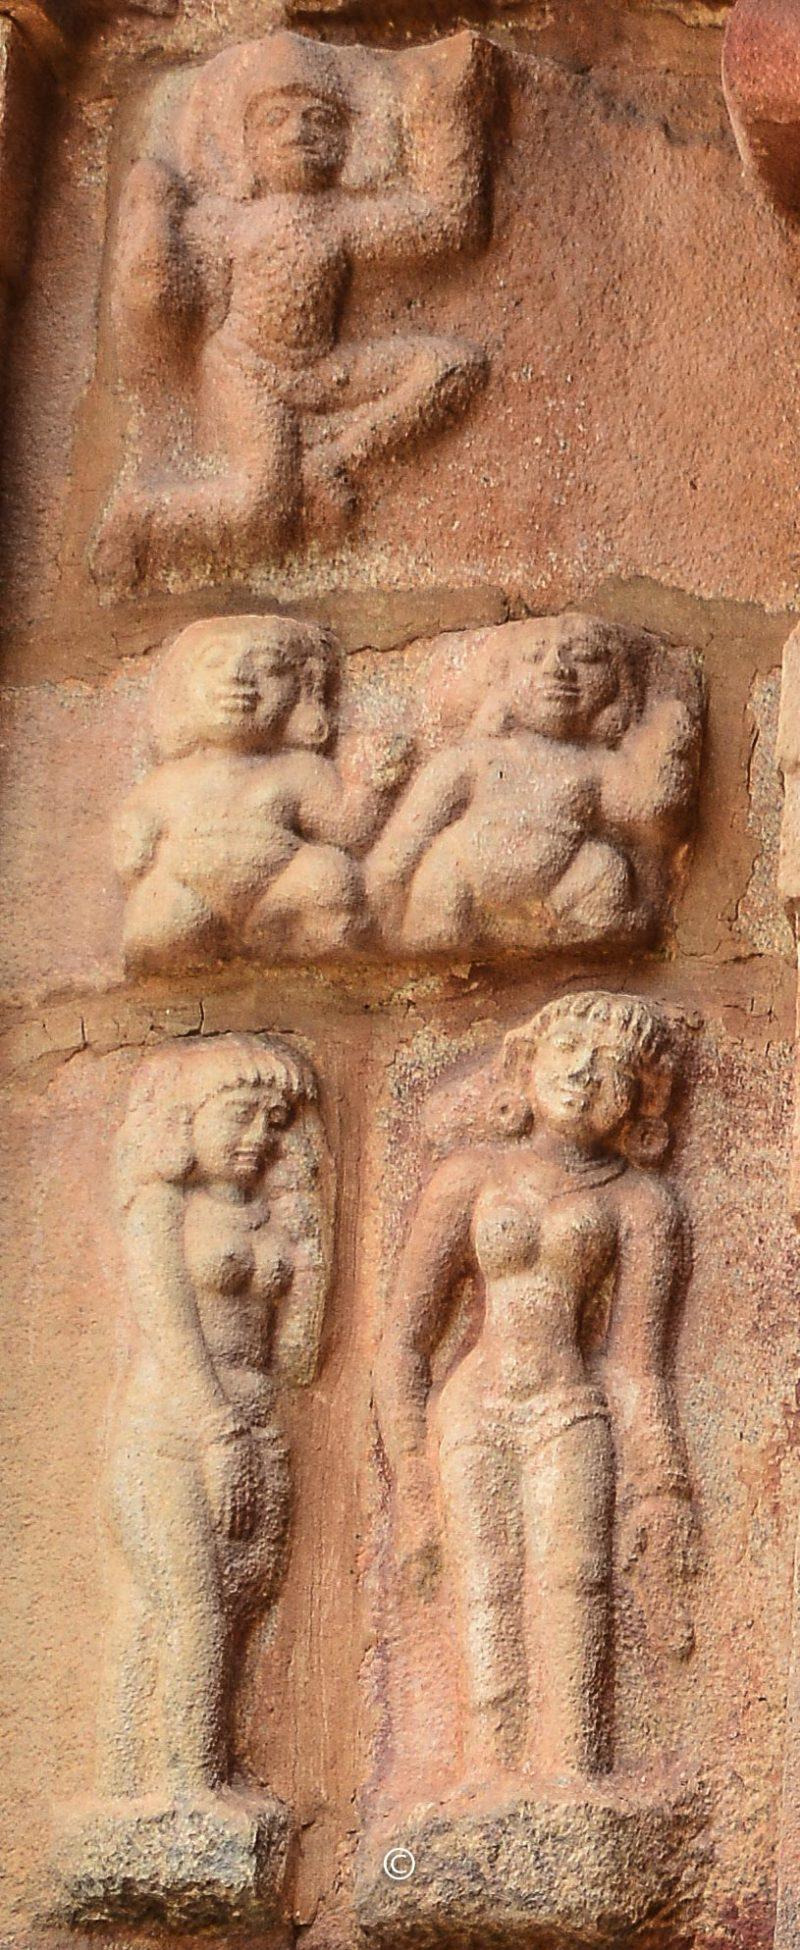 Rightside of the panel - Chandran on top, Boodha-Ganams in the middle, love-stricken women in the bottom